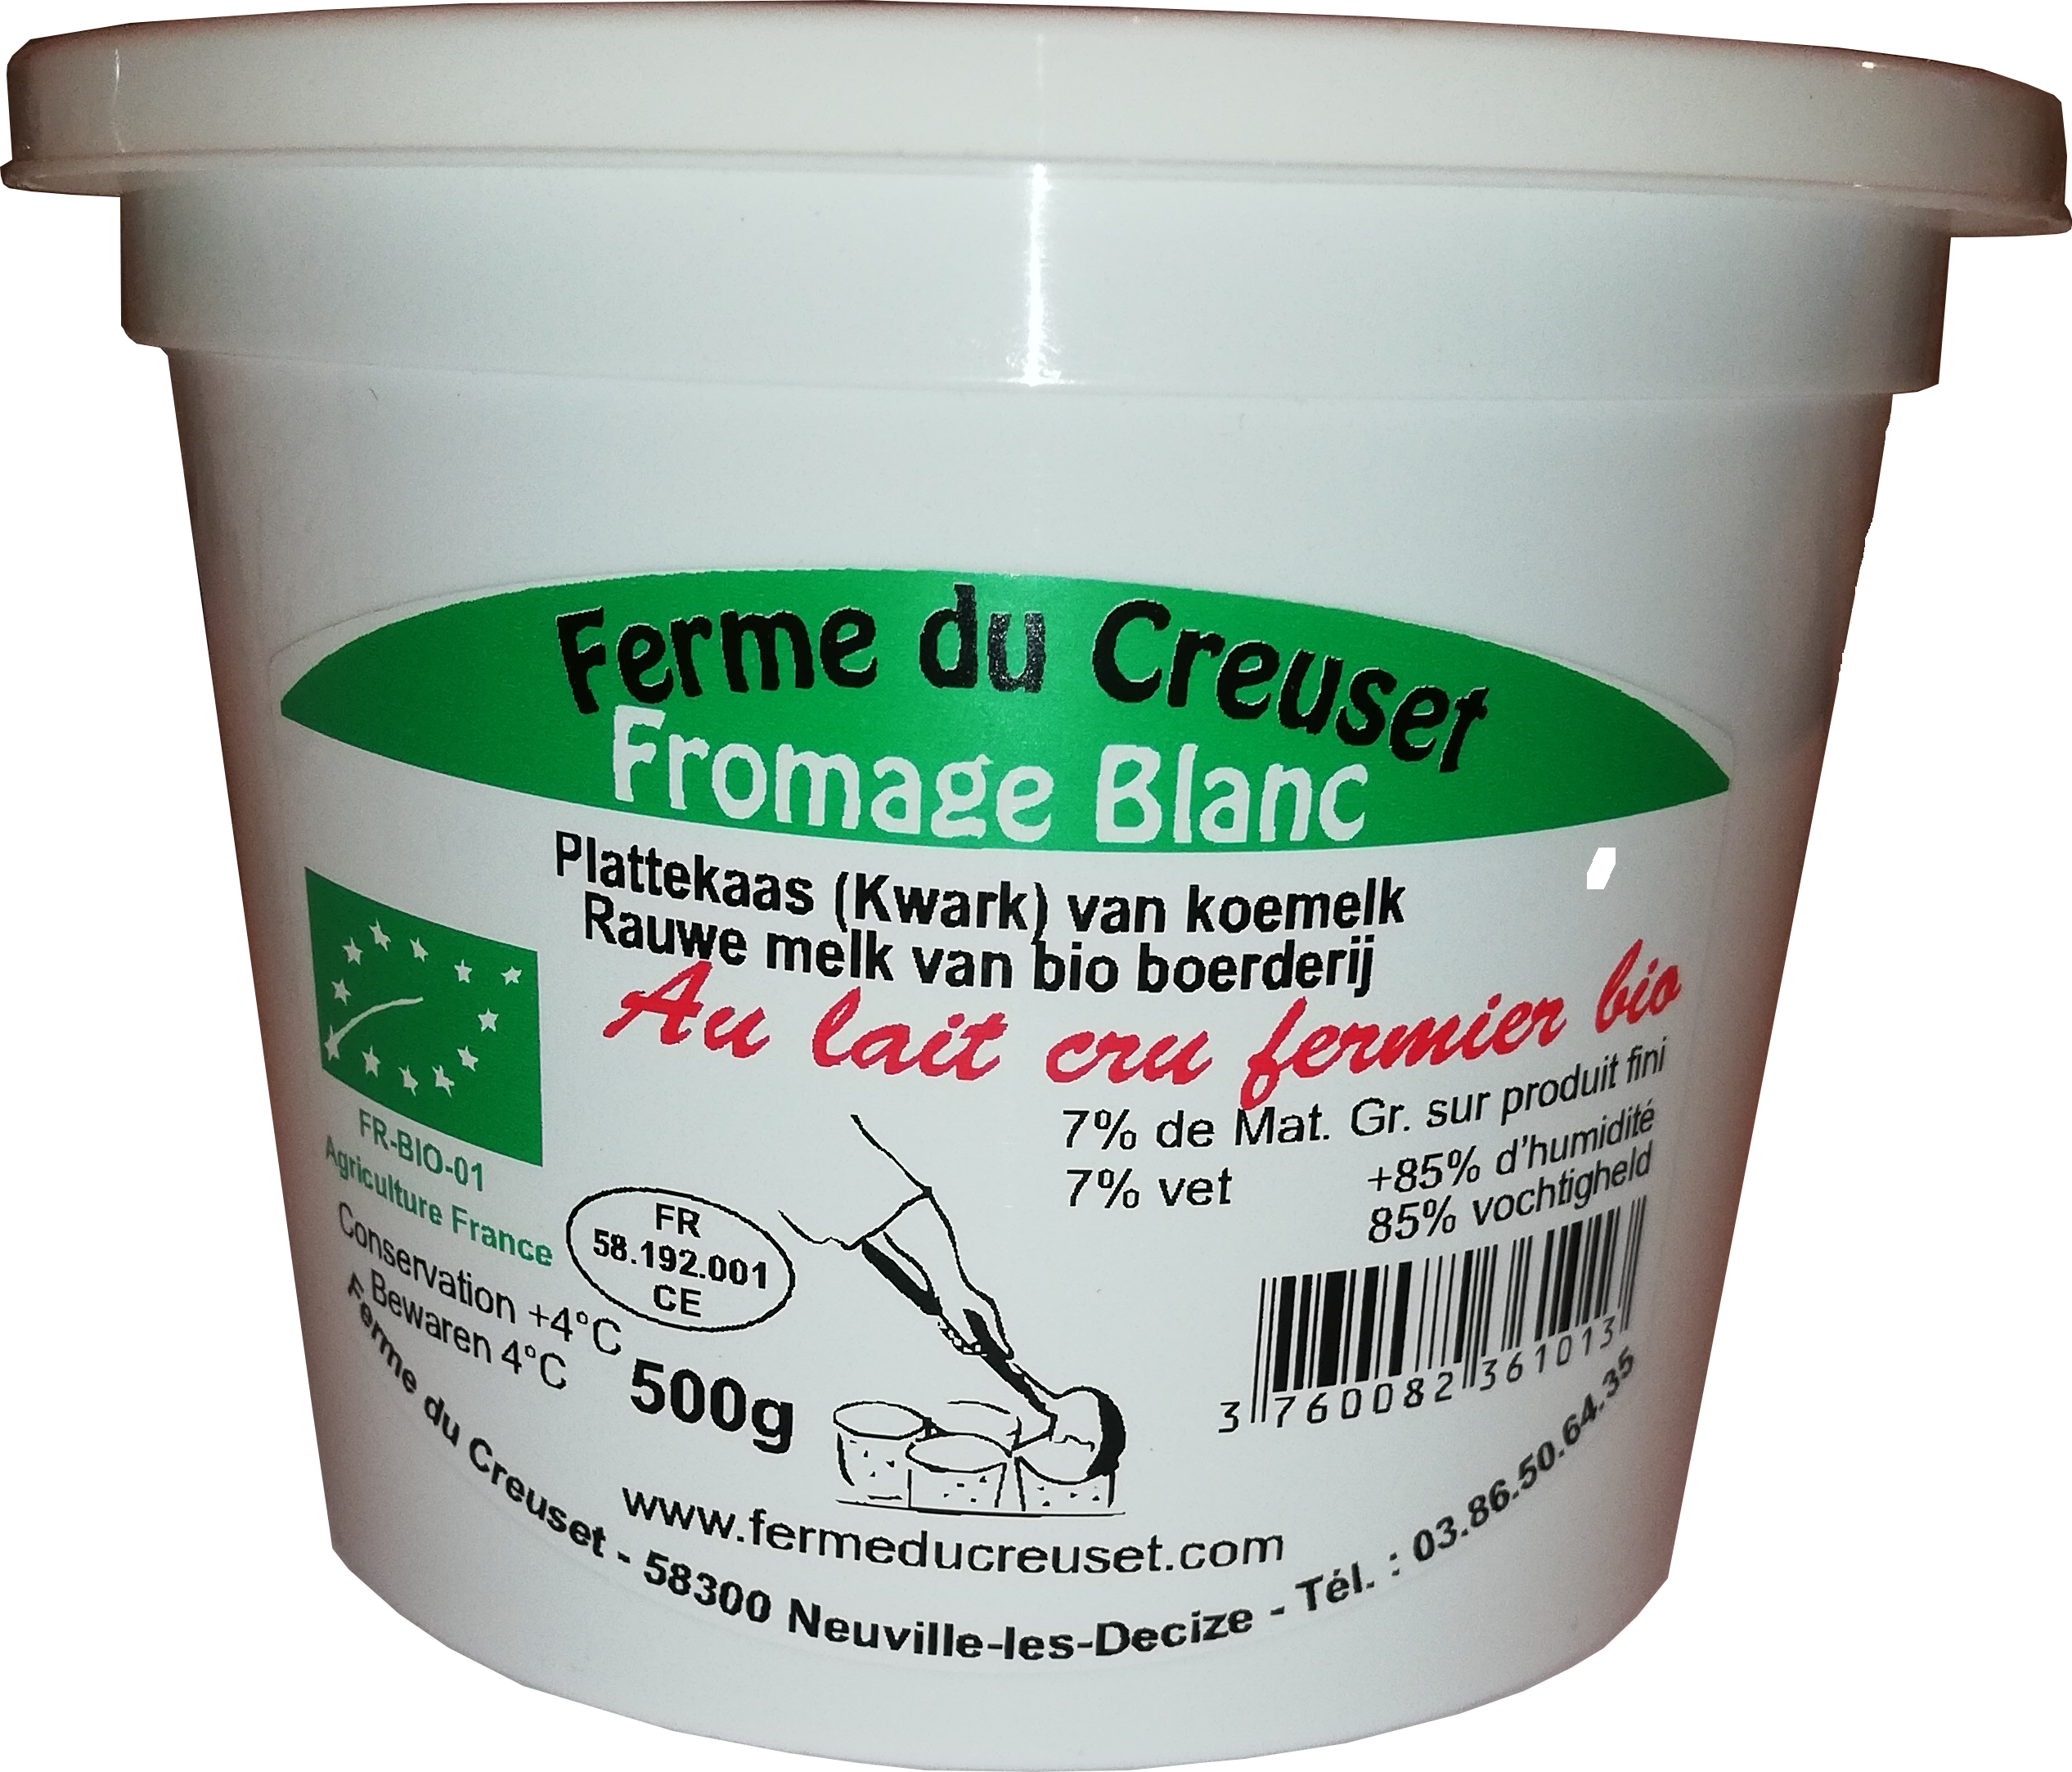 le Fromage blanc - 500g